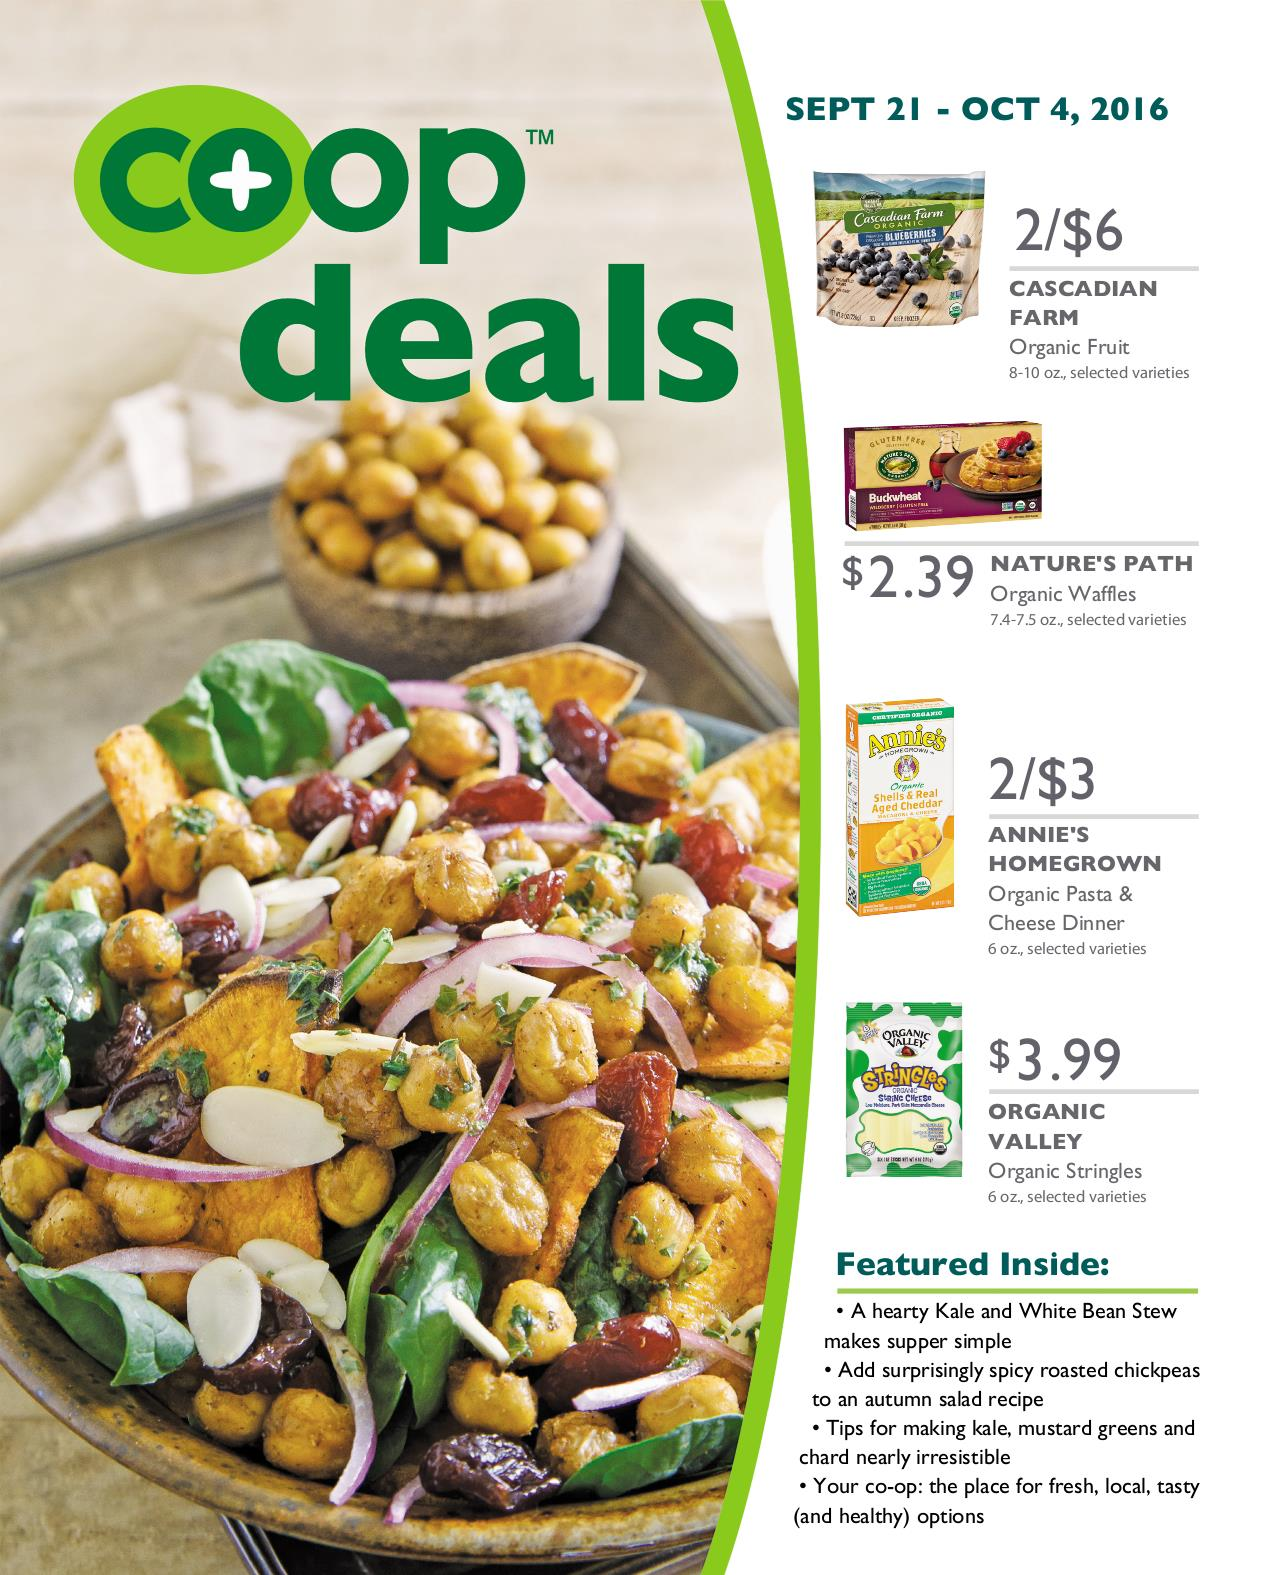 Co+op Deals Sep 2016 Flyer B